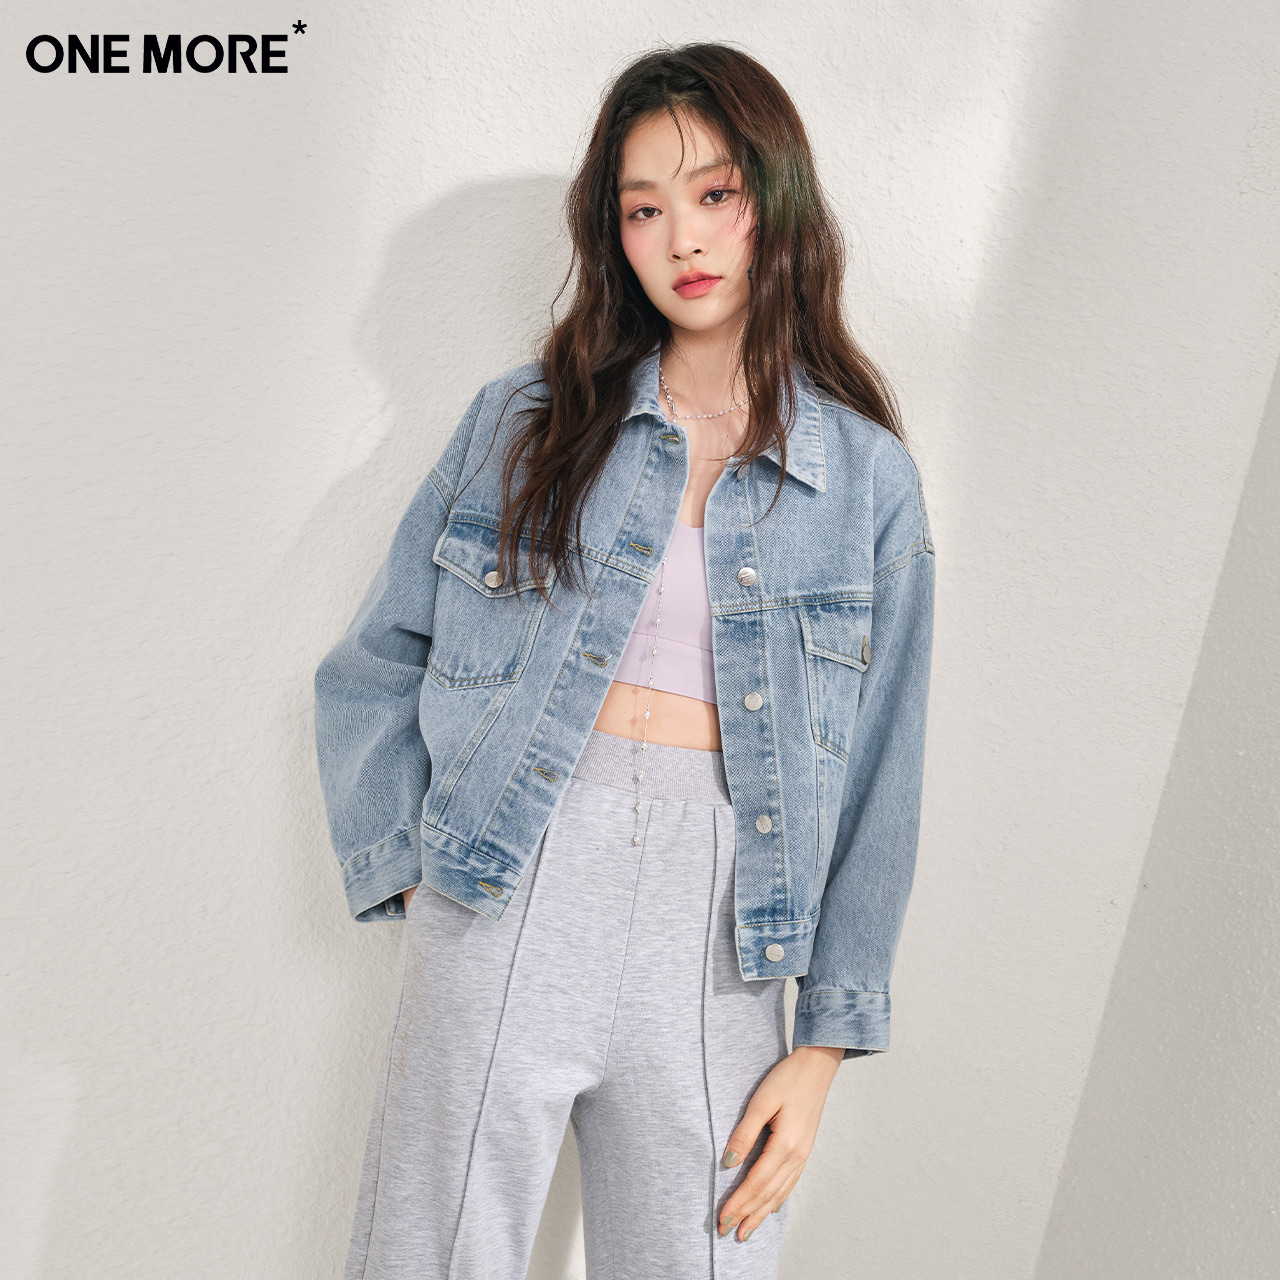 ONE MORE2021 Spring and Autumn New short denim jacket denim jacket with coat cardigan